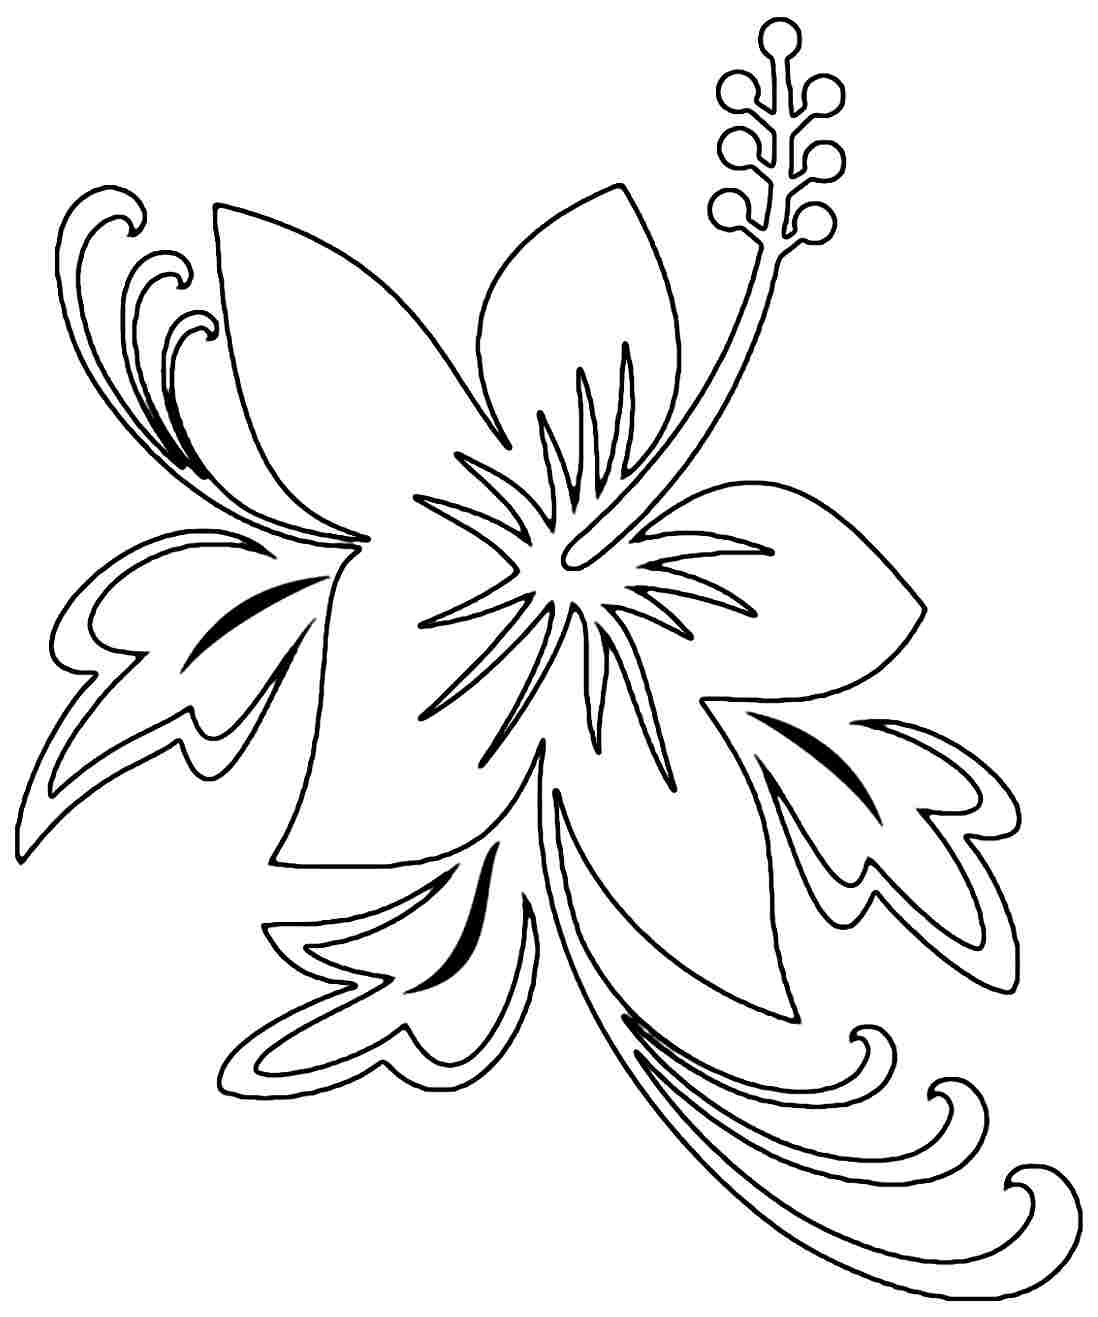 Black And White Coloring Page Tumblr